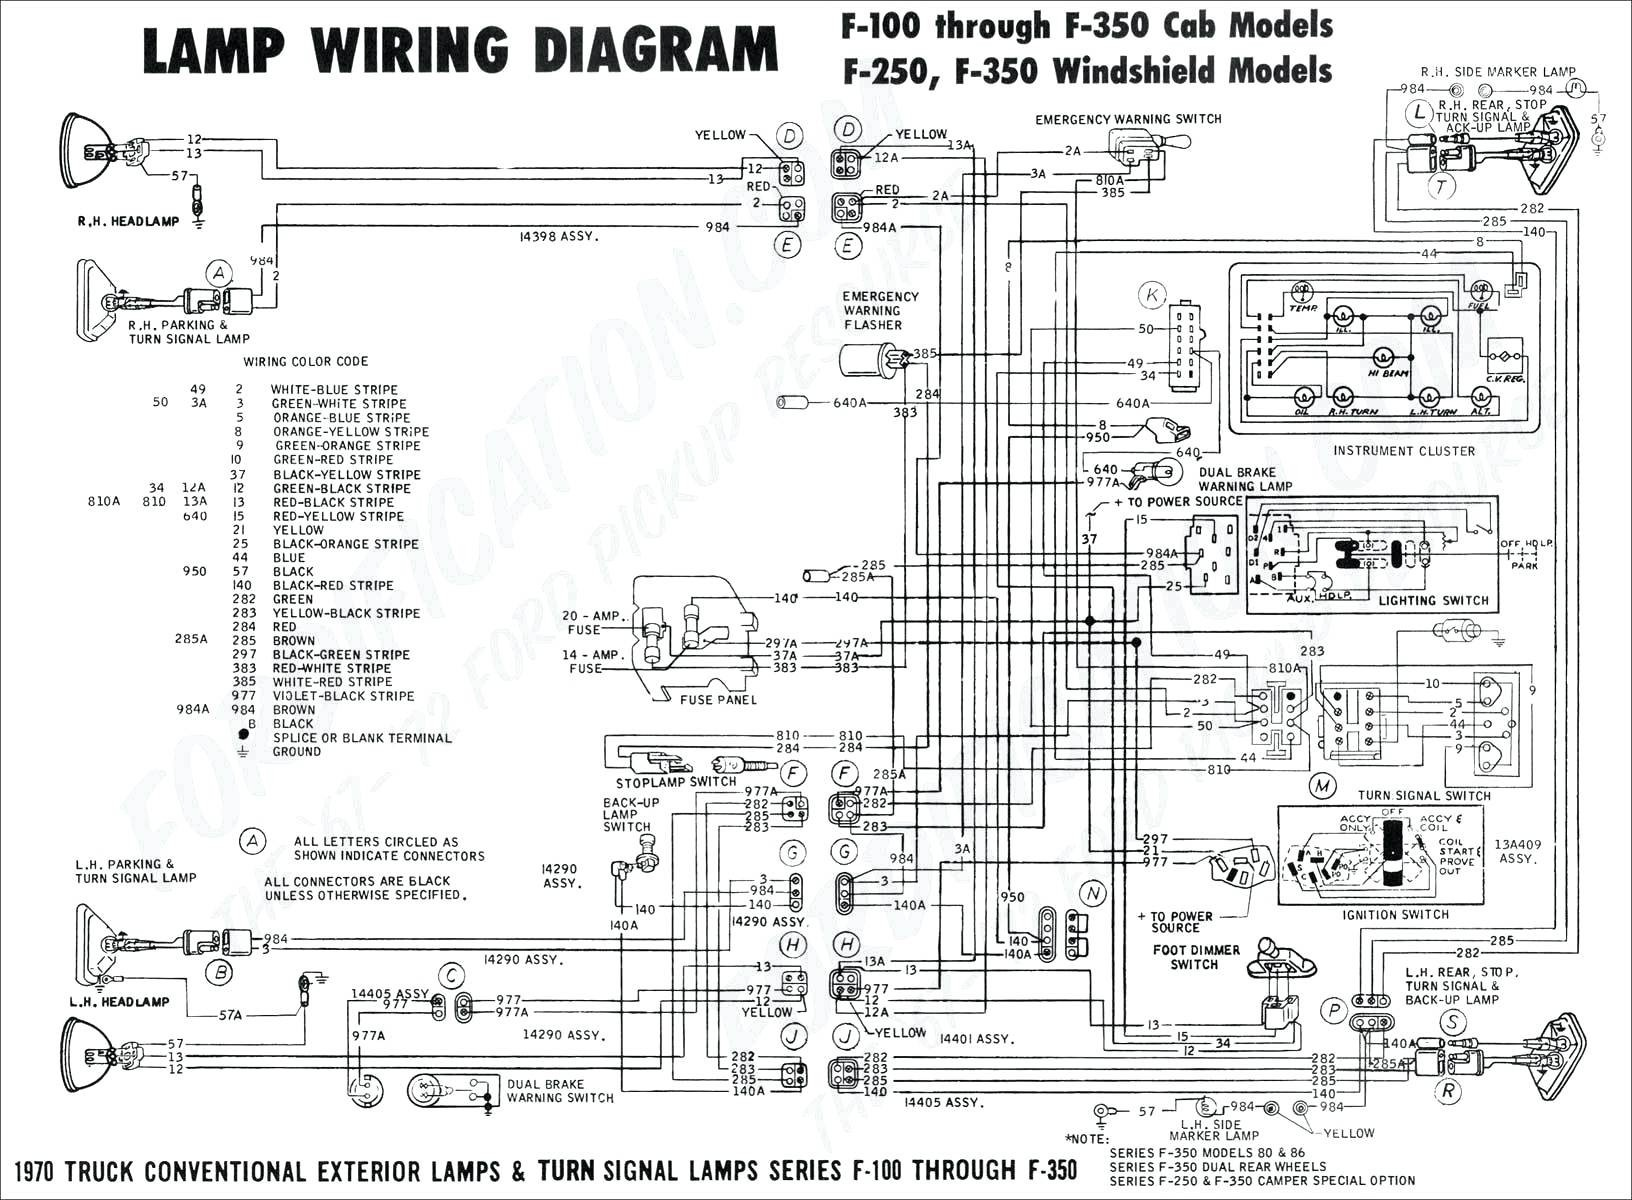 1977 Chevy Truck Vacuum Diagram 1973 Buick Riviera Vacuum Diagram Worksheet and Wiring Diagram •